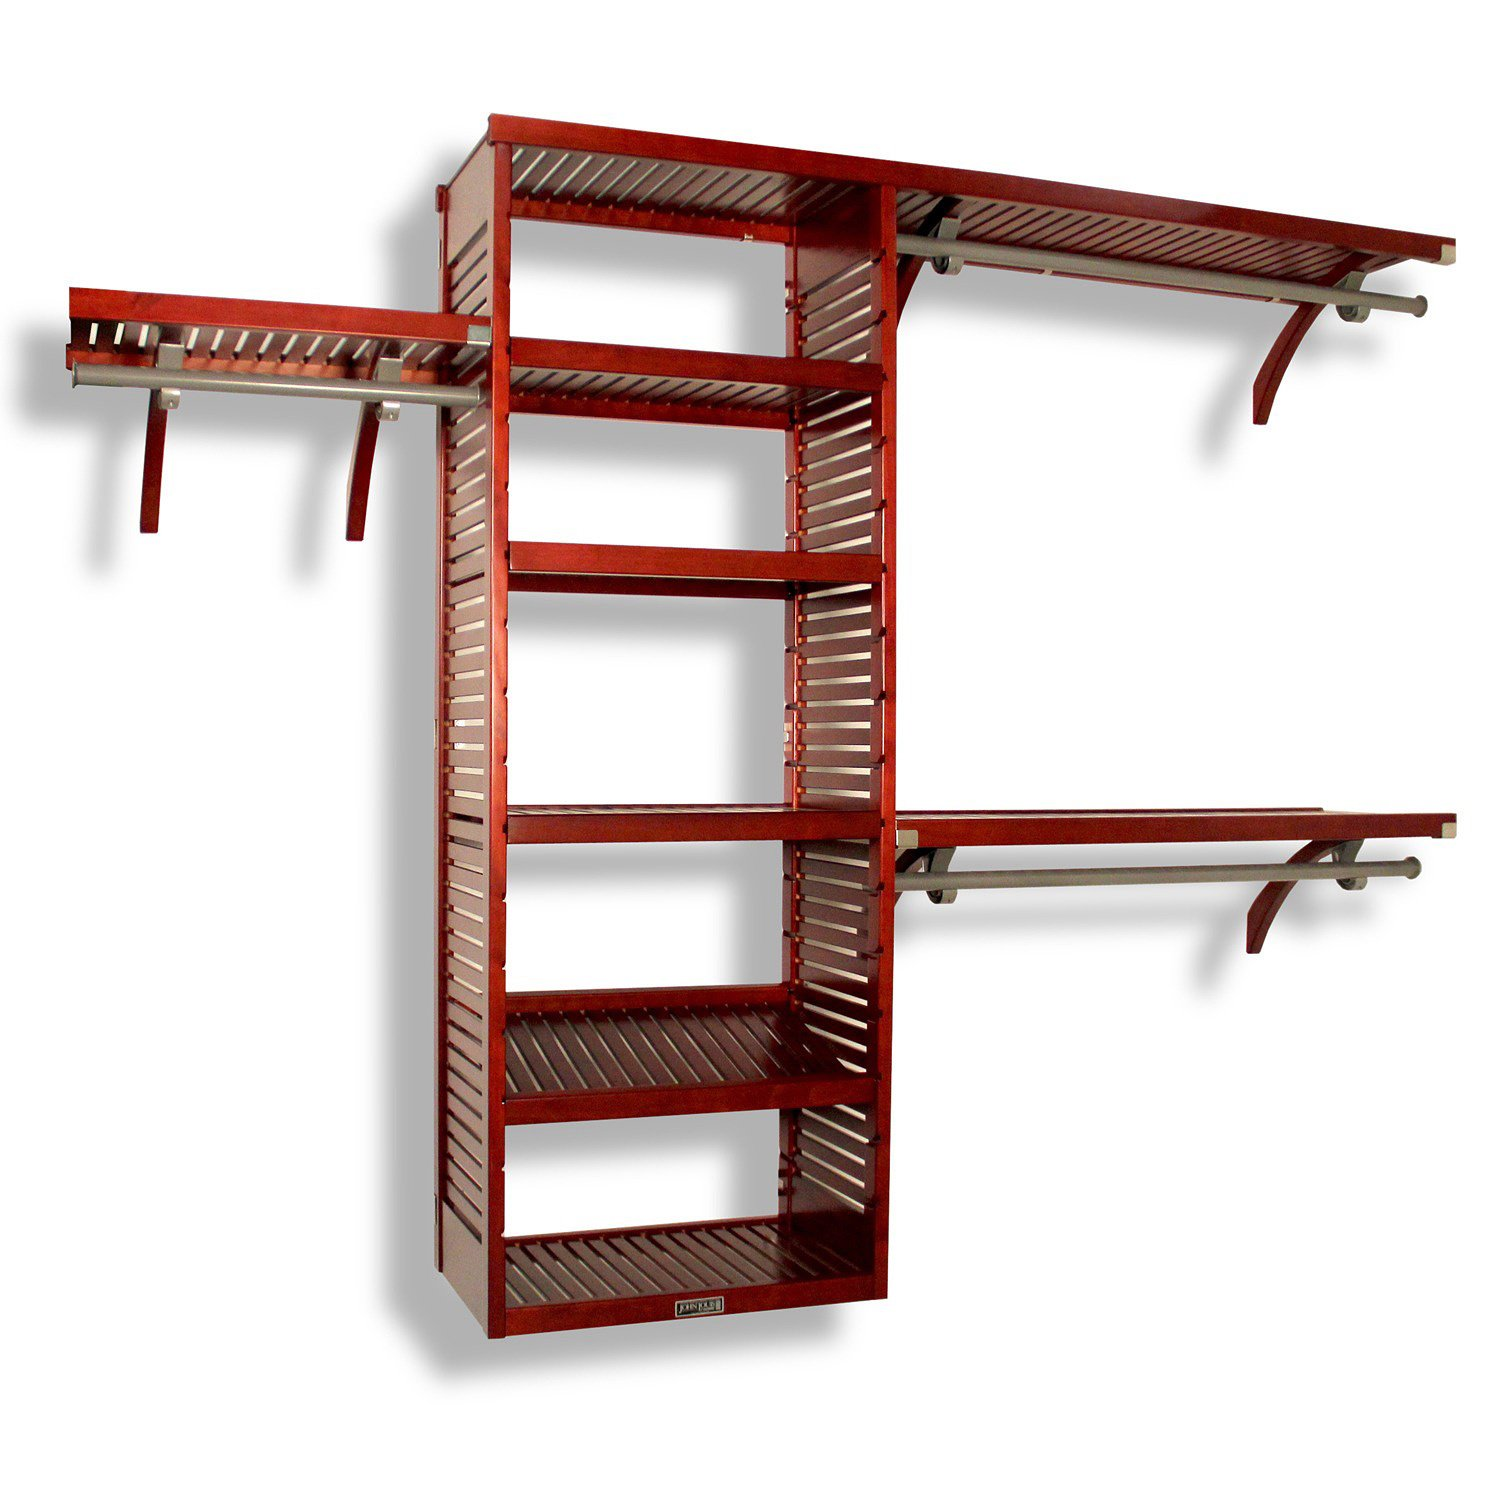 Amazon.com: John Louis Home JLH 526 Deluxe 16 Inch Deep Closet Shelving  System, Red Mahogany: Home U0026 Kitchen